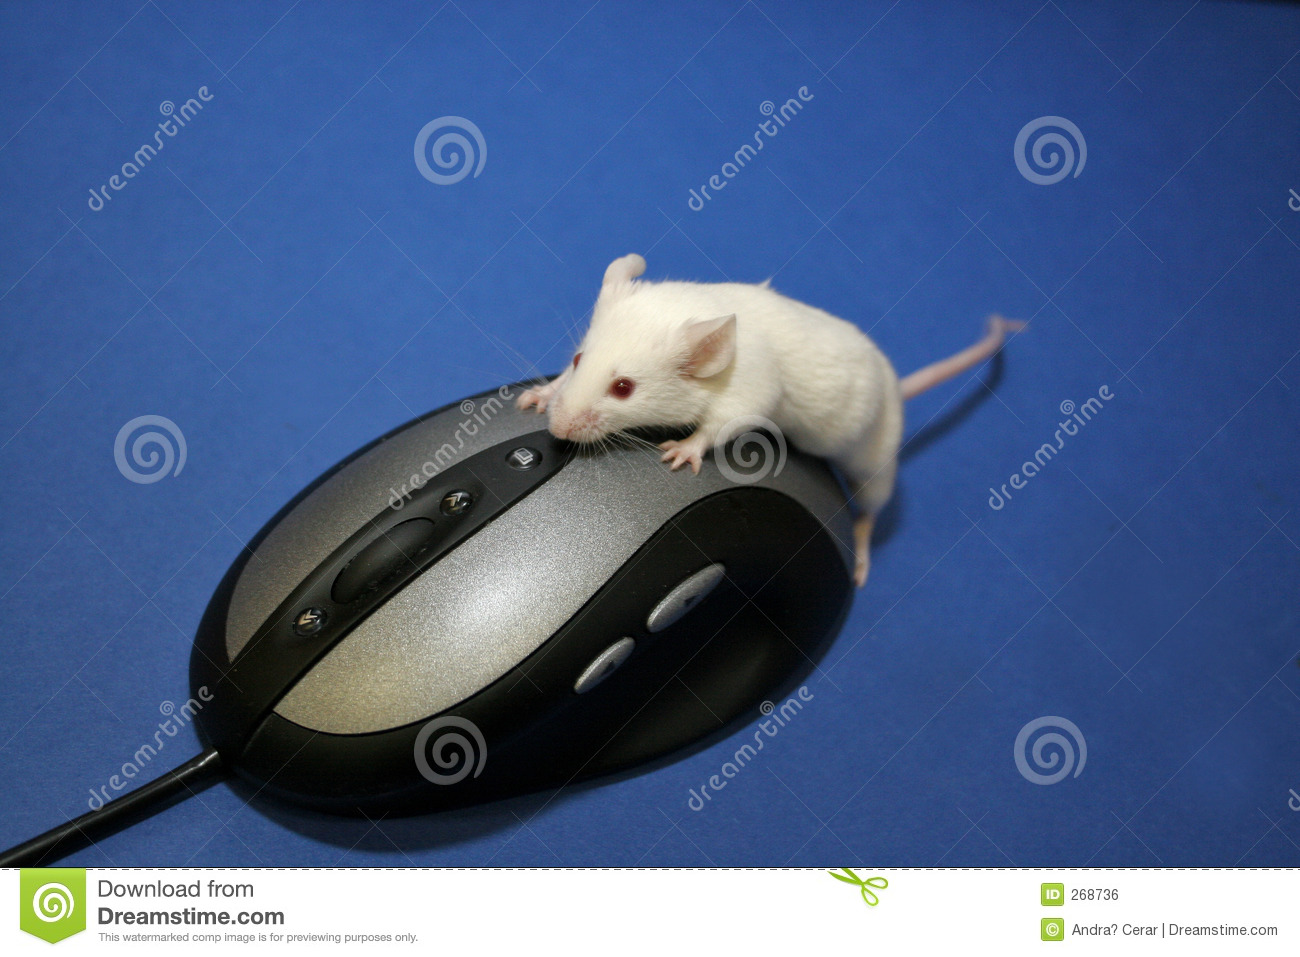 Double clicking my mouse - 5 2